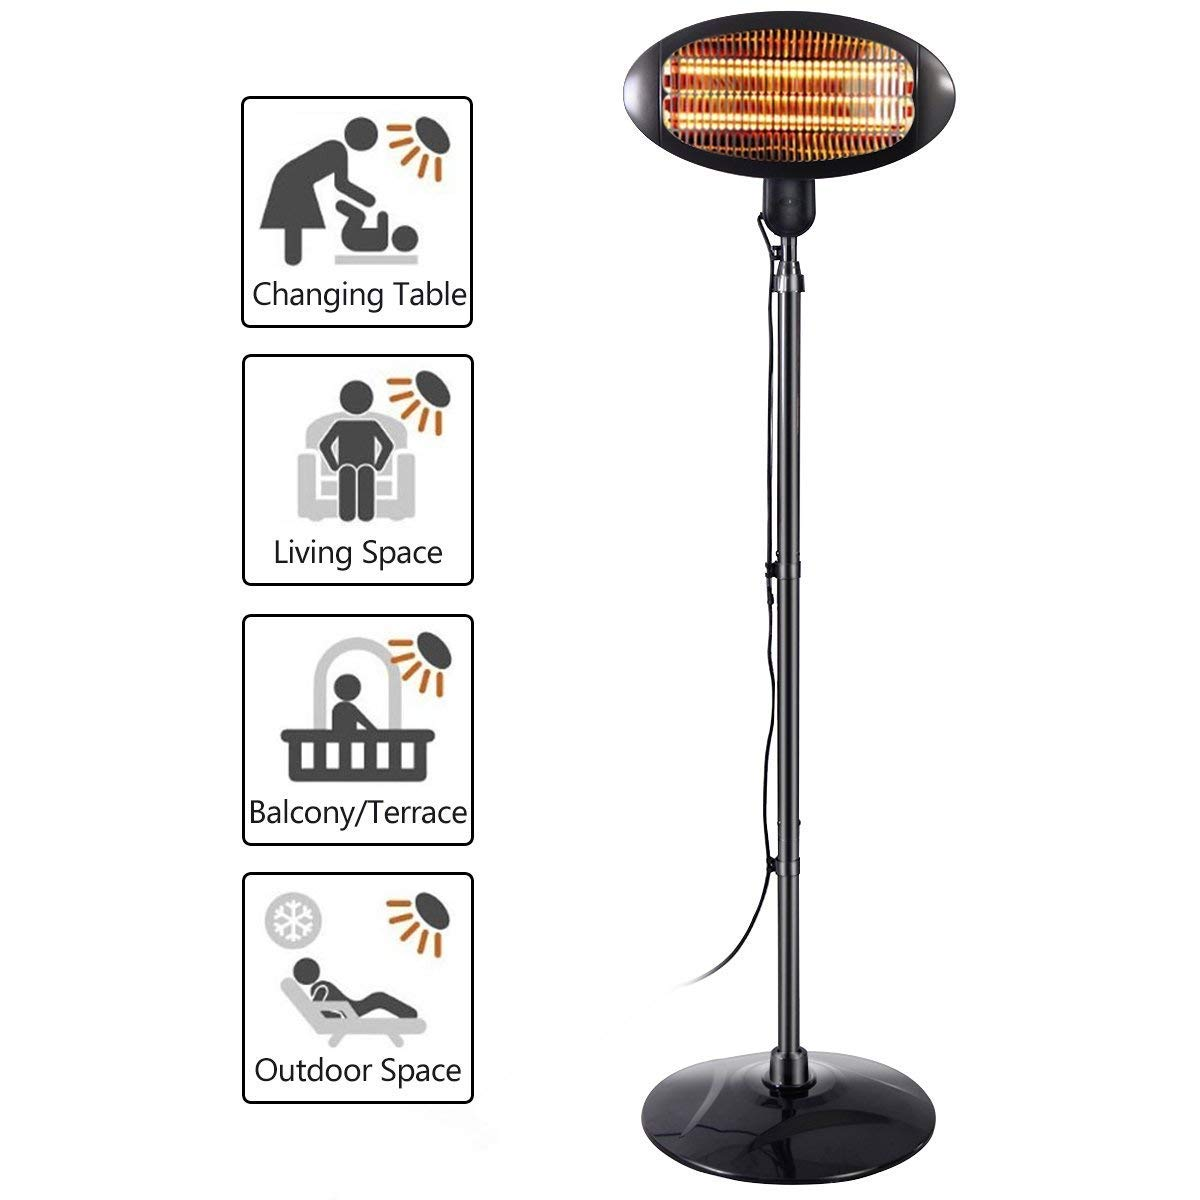 COSTWAY Electric Patio Heater, 2KW Freestanding Quartz Patio Heaters with Adjustable Height - 3 Heat Settings, Waterproof IPX4 Garden Heater for Indoor Outdoor